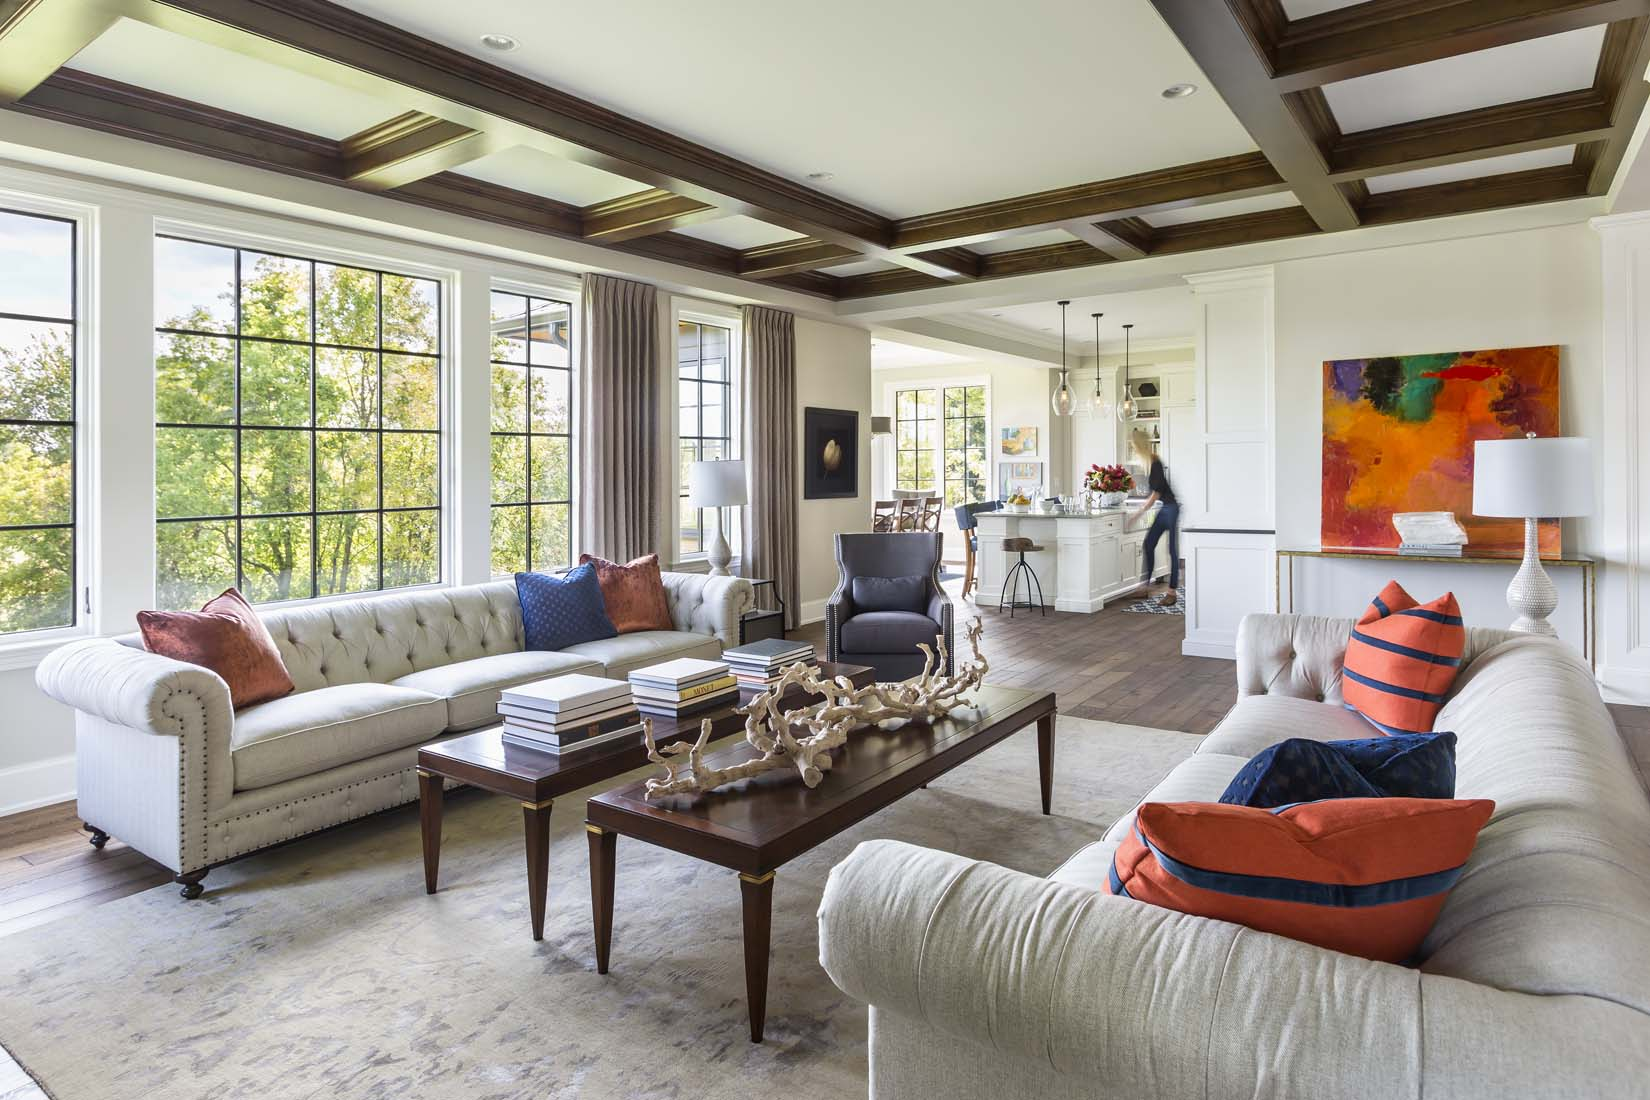 Upscale living room with neutral colors and accents of bright orange